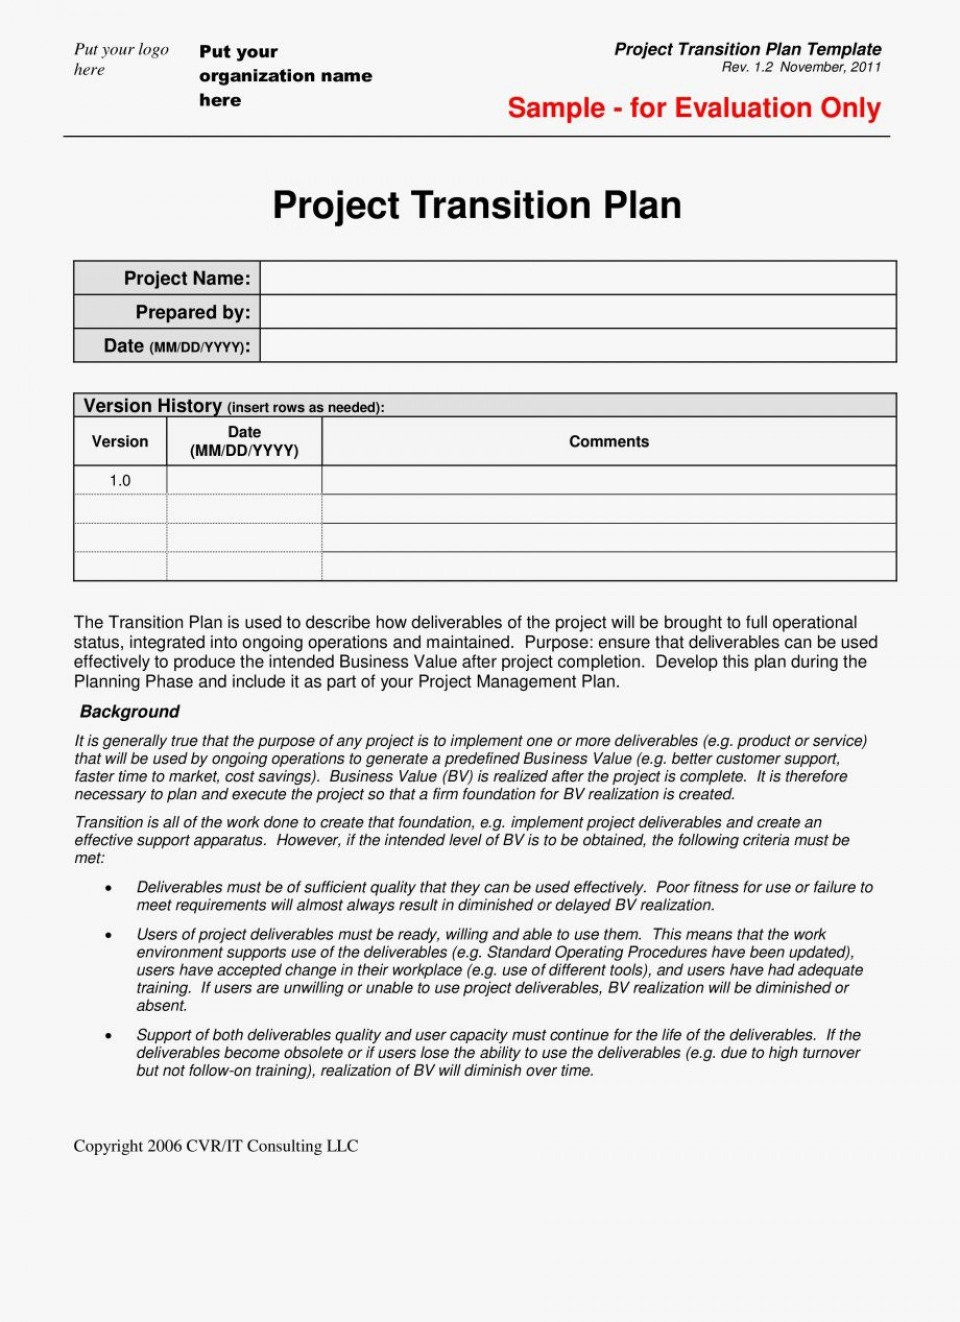 009 Stunning Project Transition Plan Sample High Def  Template Ppt Out960